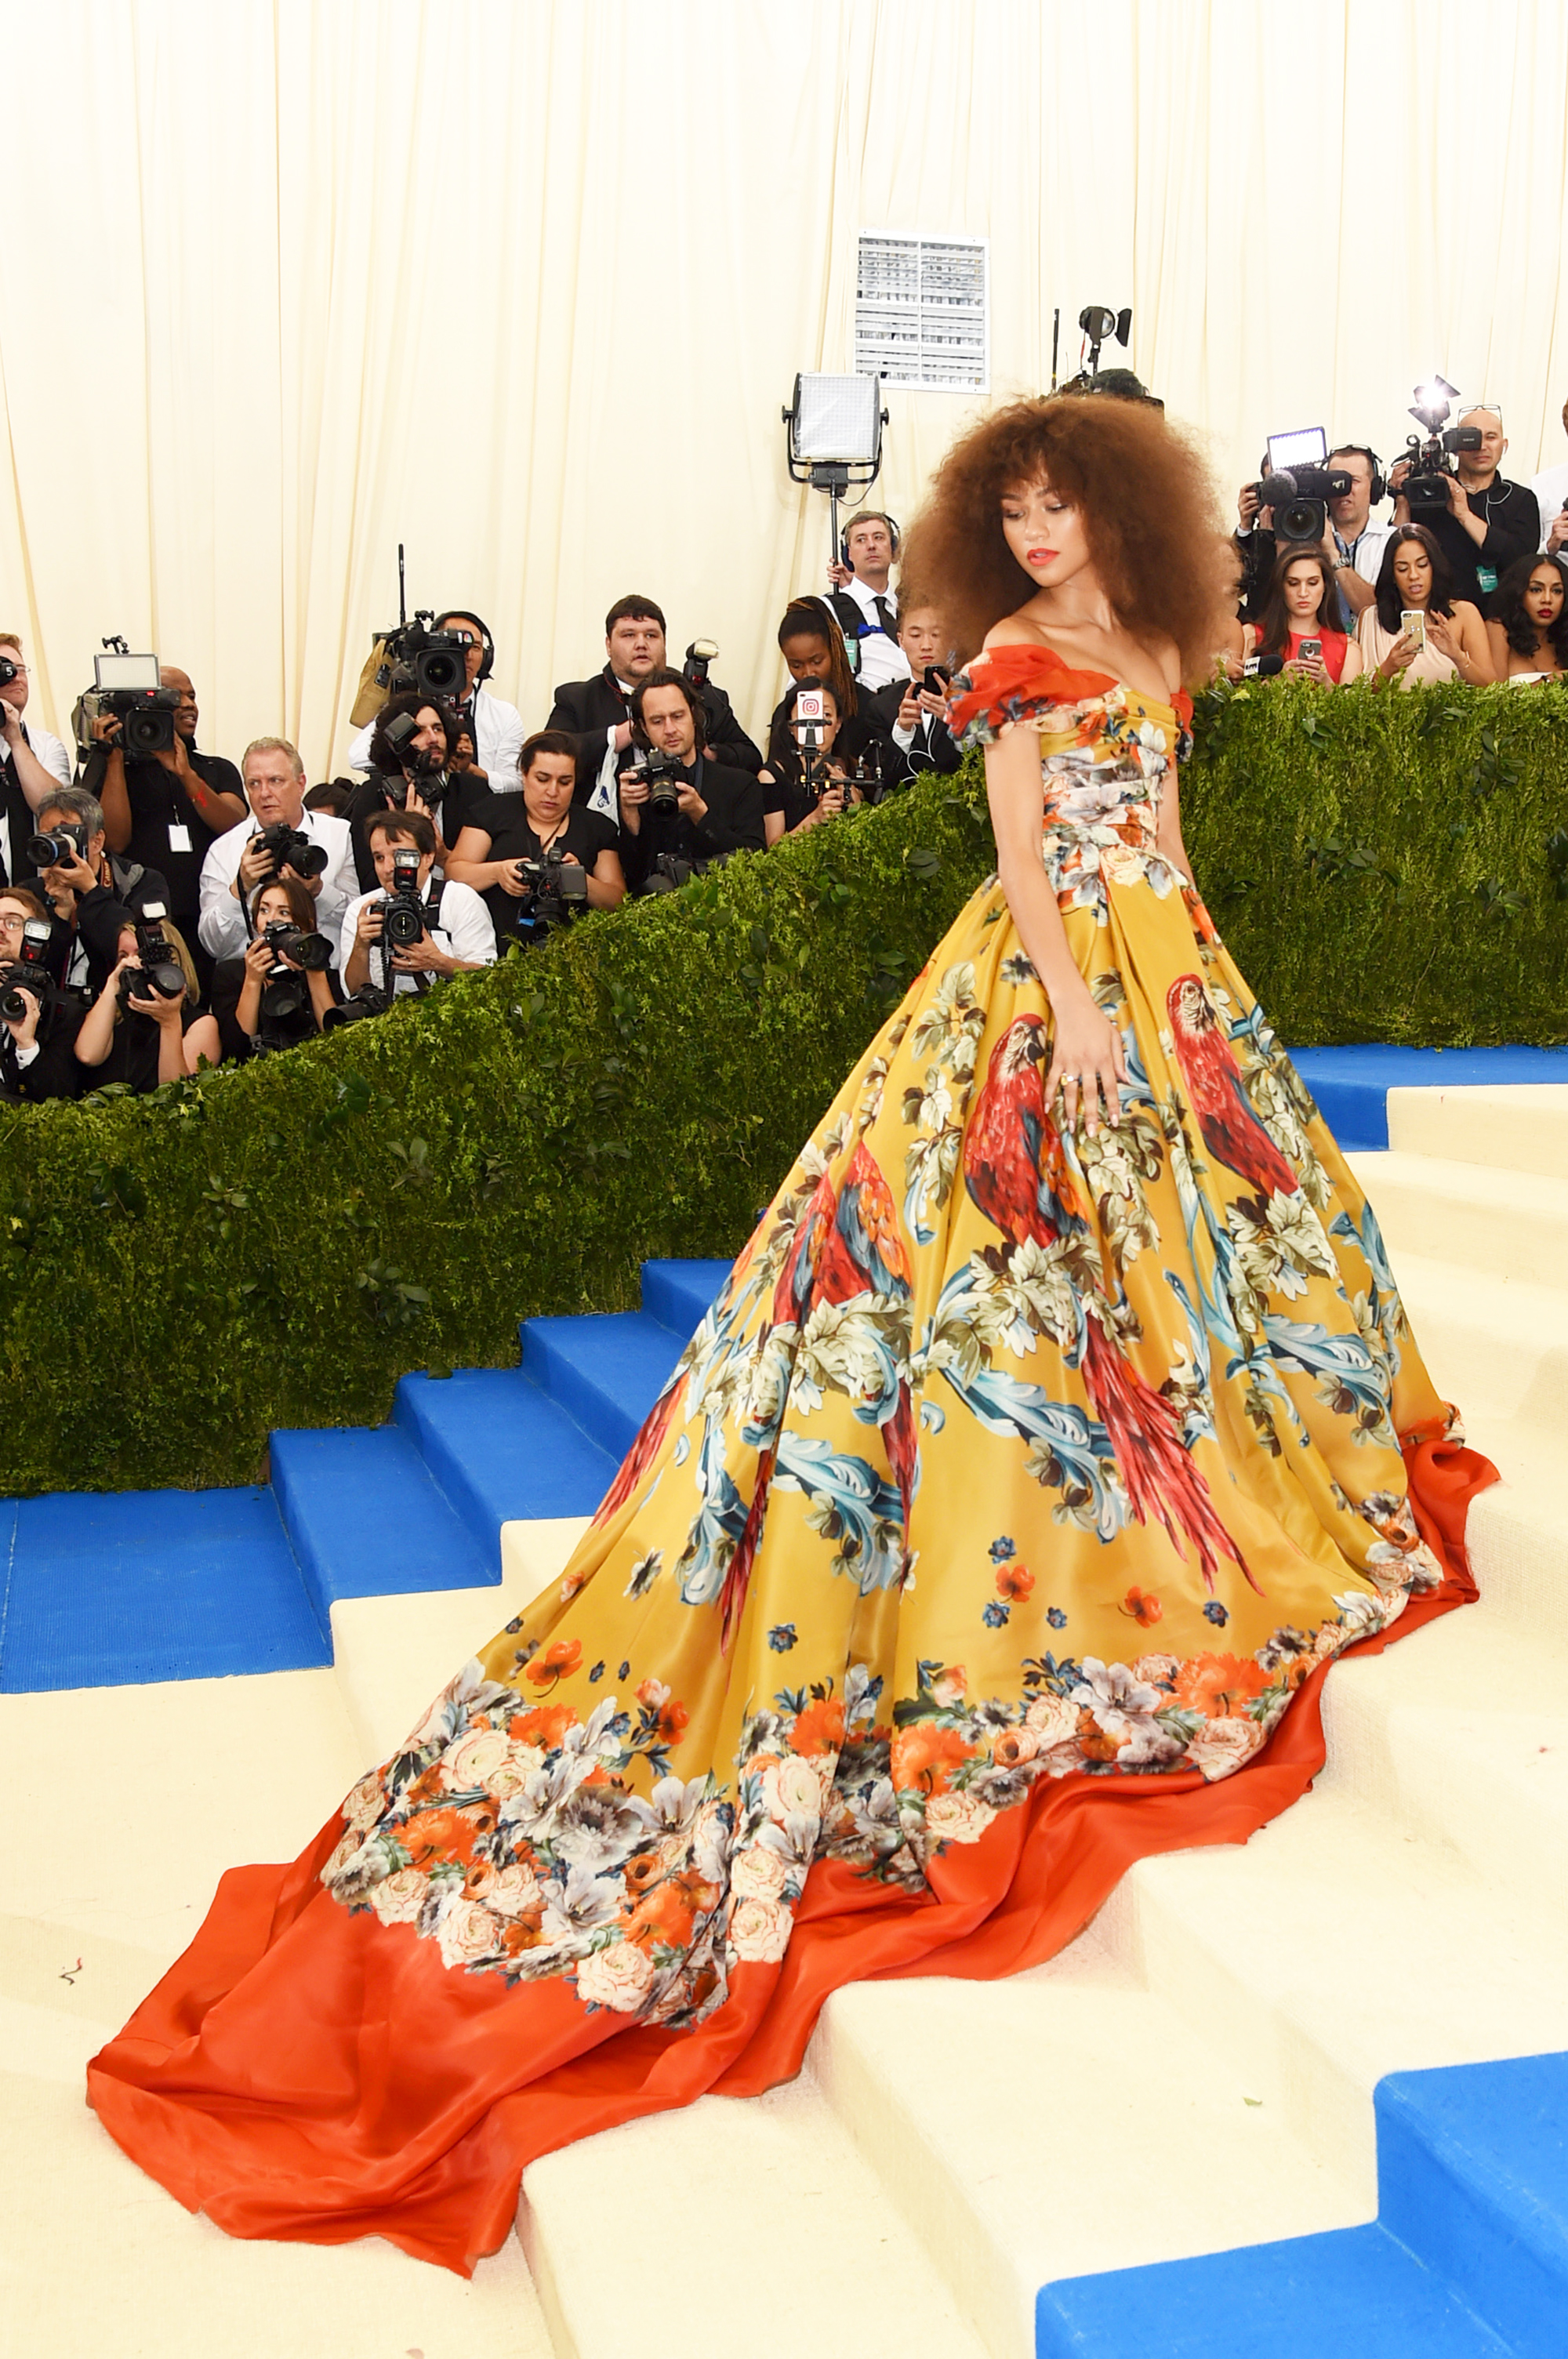 Zendaya attends The Metropolitan Museum of Art's Costume Institute benefit gala celebrating the opening of the Rei Kawakubo/Comme des Garçons: Art of the In-Between exhibition in New York City, on May 1, 2017.